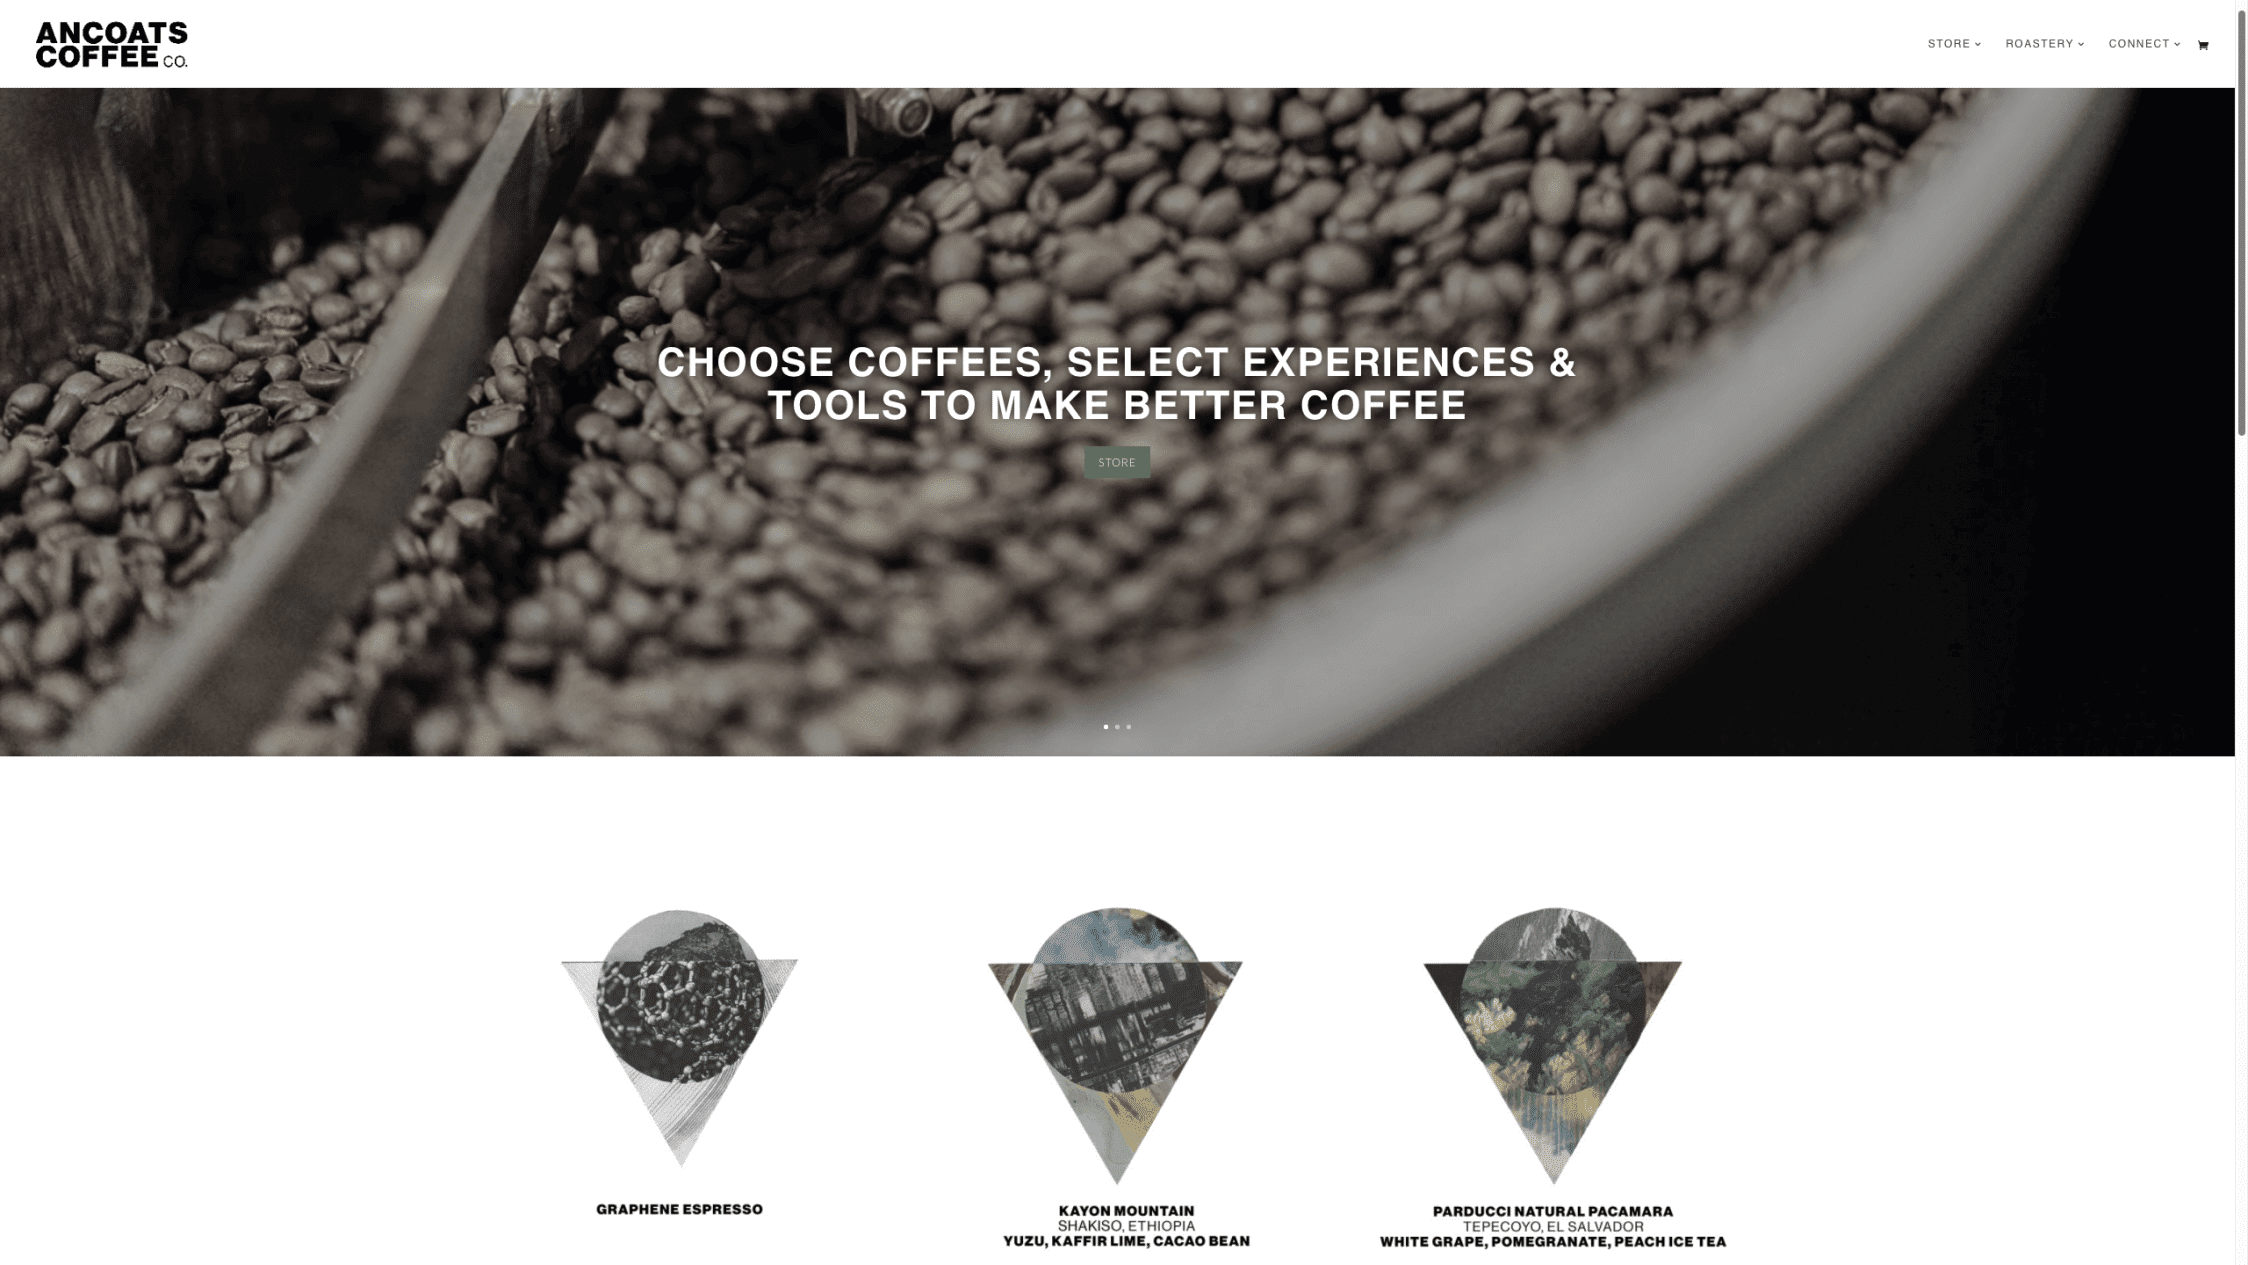 Ancoats Coffee After - Cafe and coffee roastery website design